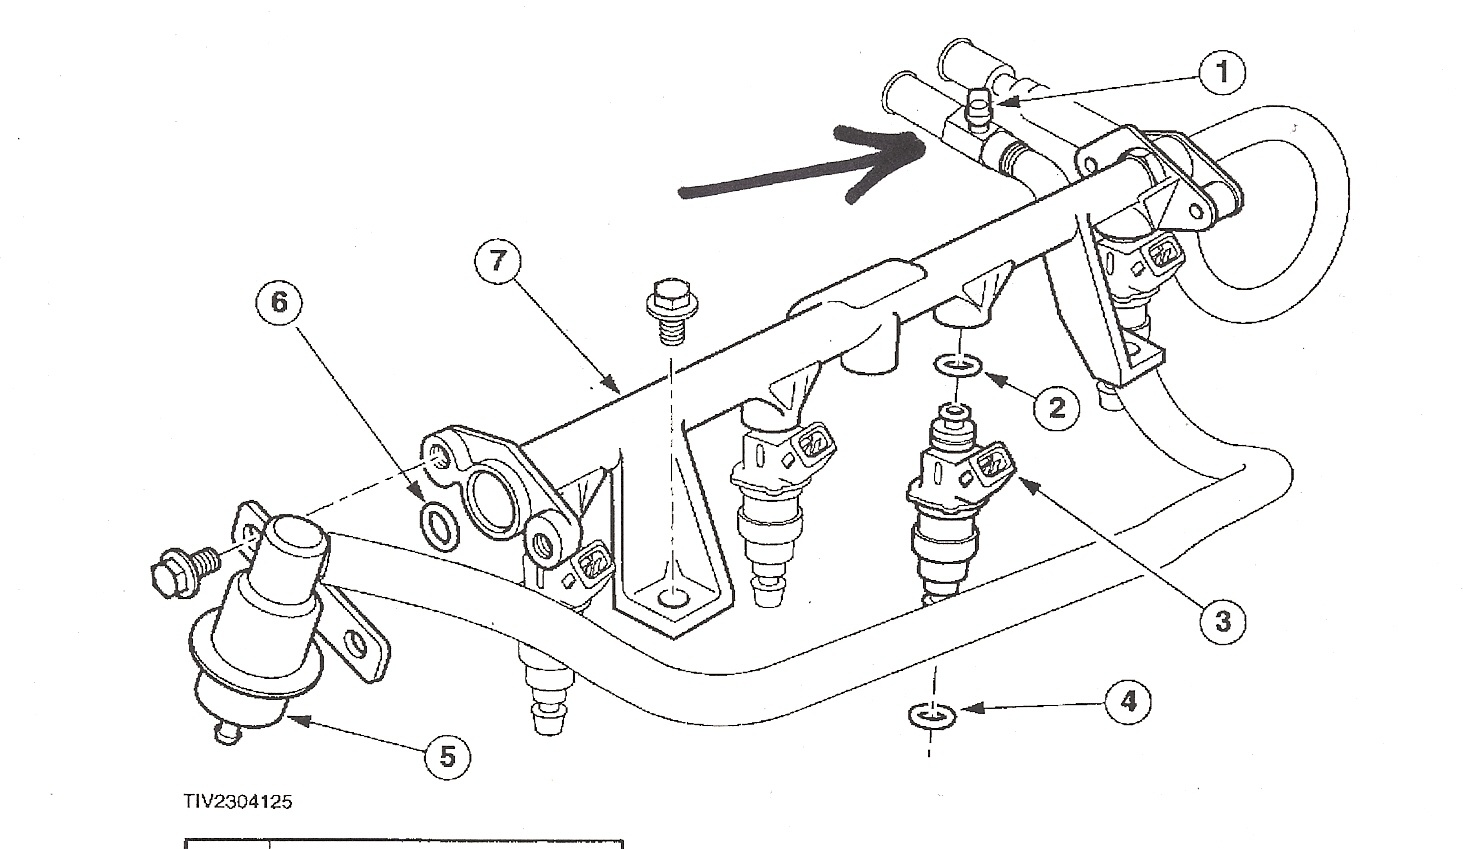 [WRG-4274] 1997 Ford Contour Fuse Box Diagram